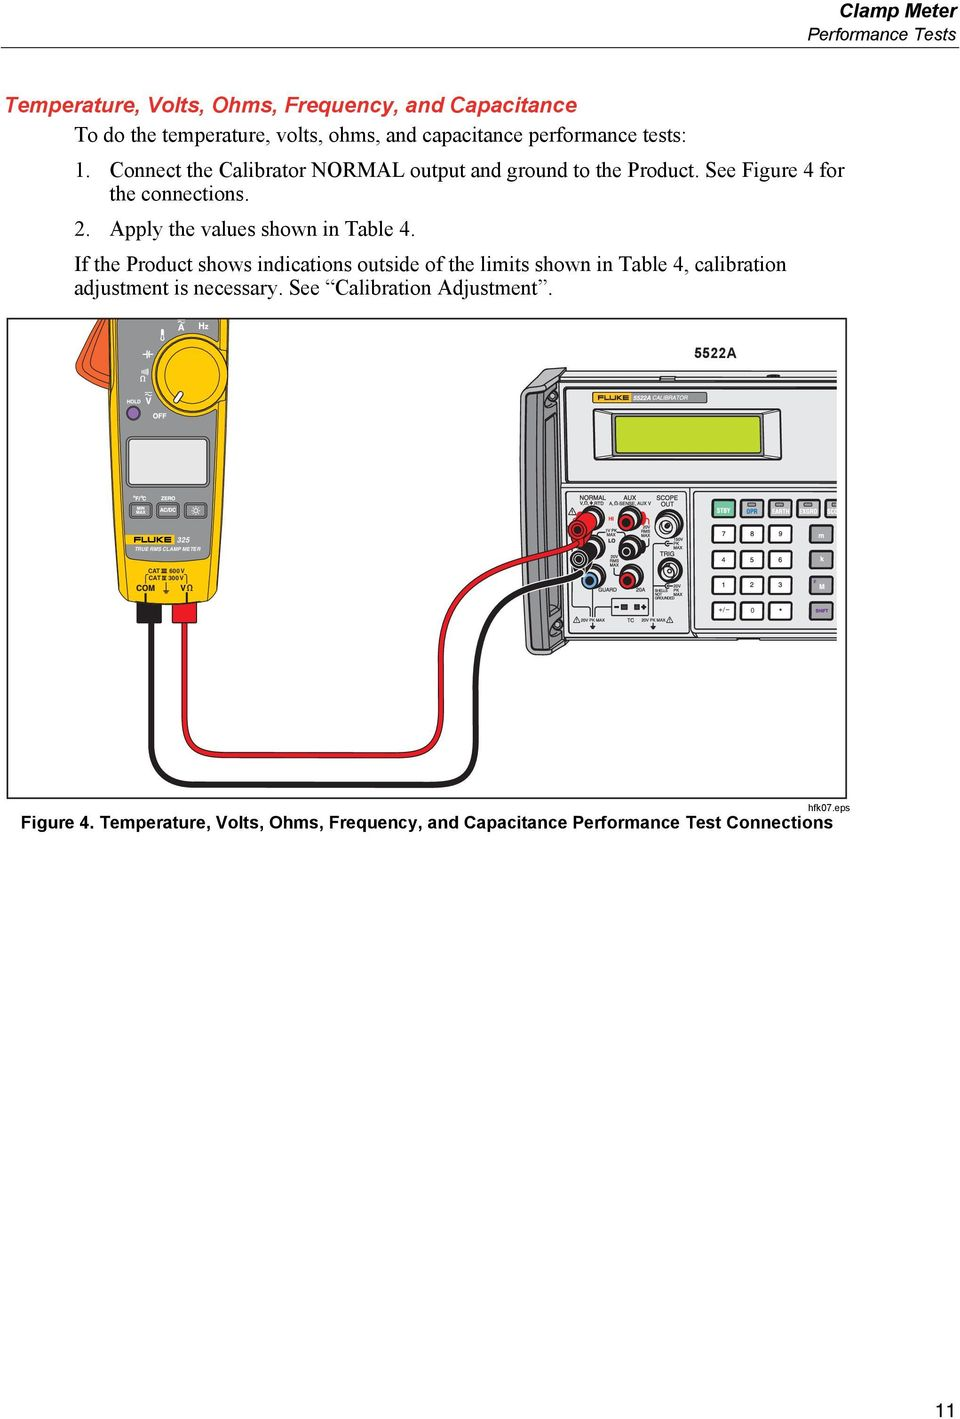 323/324/325  Calibration Manual  Clamp Meter - PDF